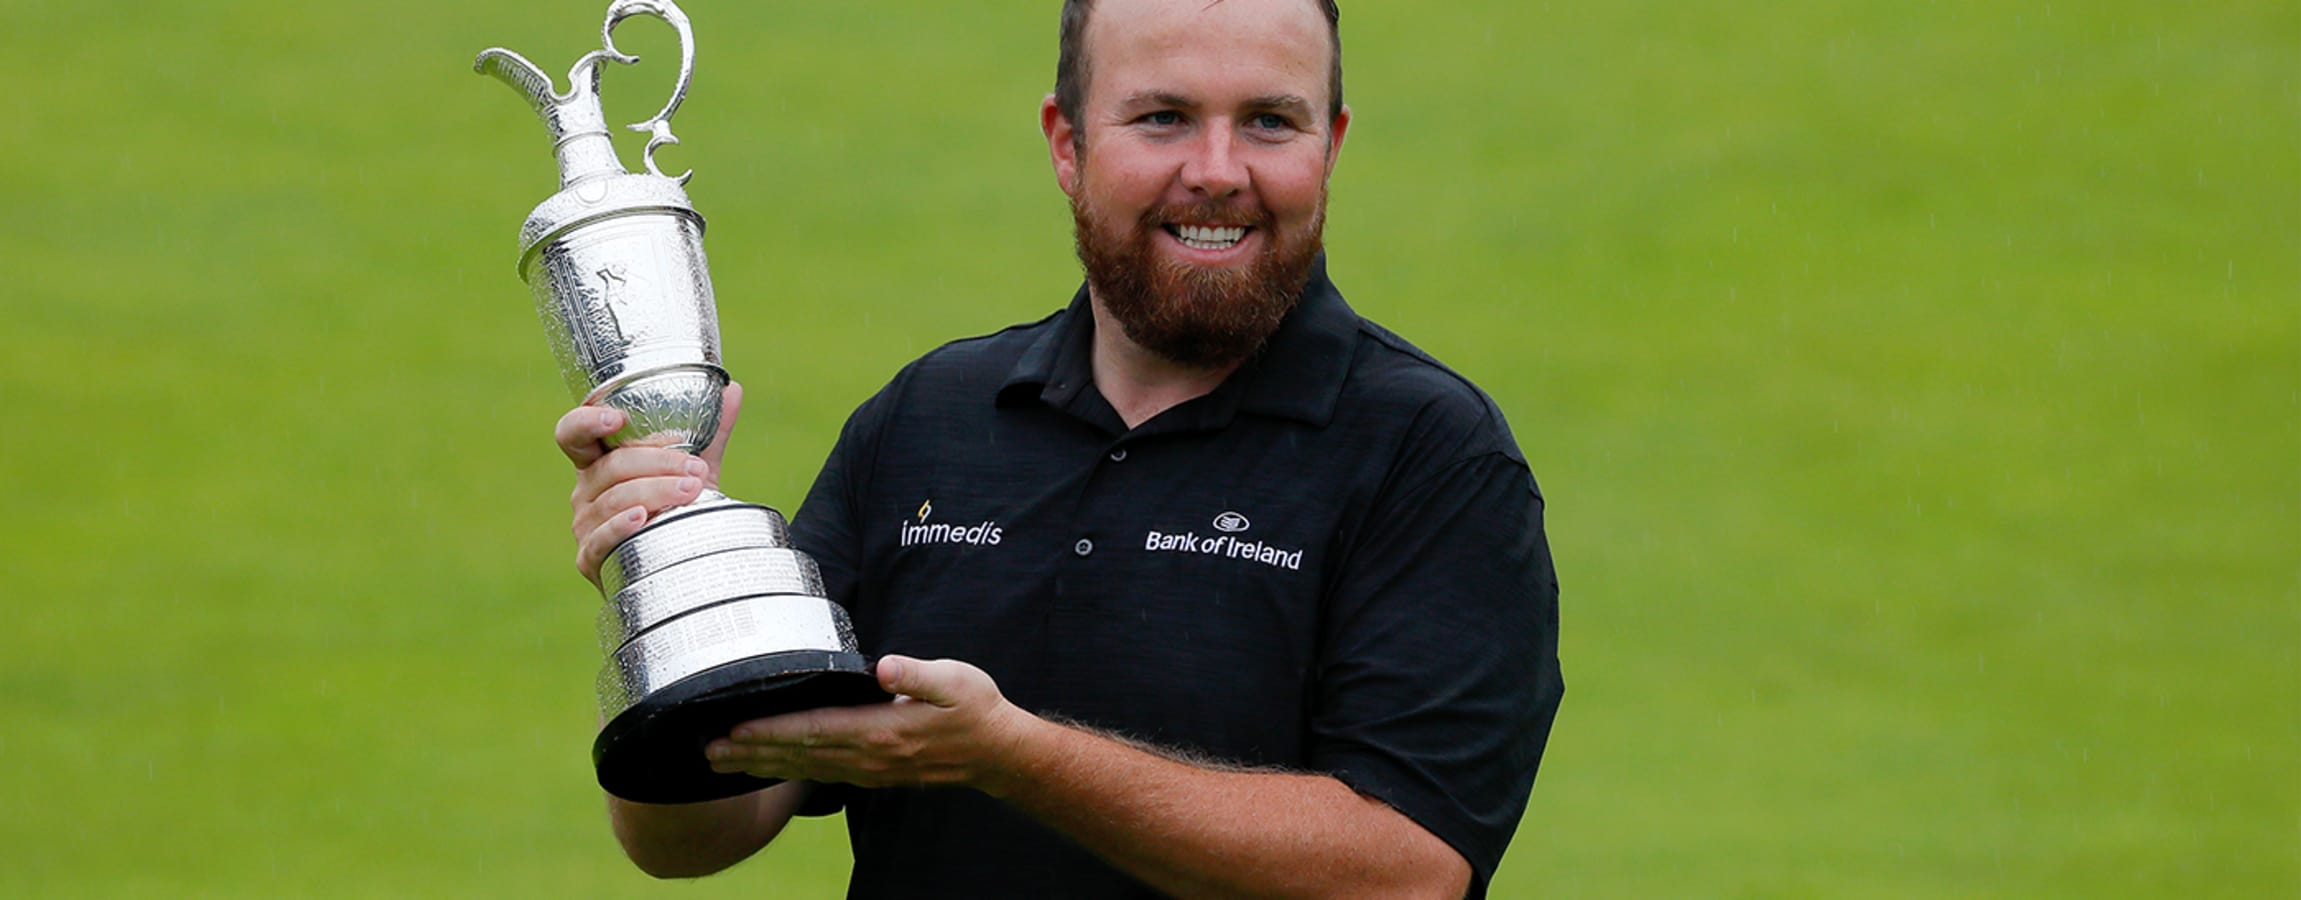 Champions Tour Schedule 2020 Shane Lowry qualifies for the 2020 Sentry Tournament of Champions